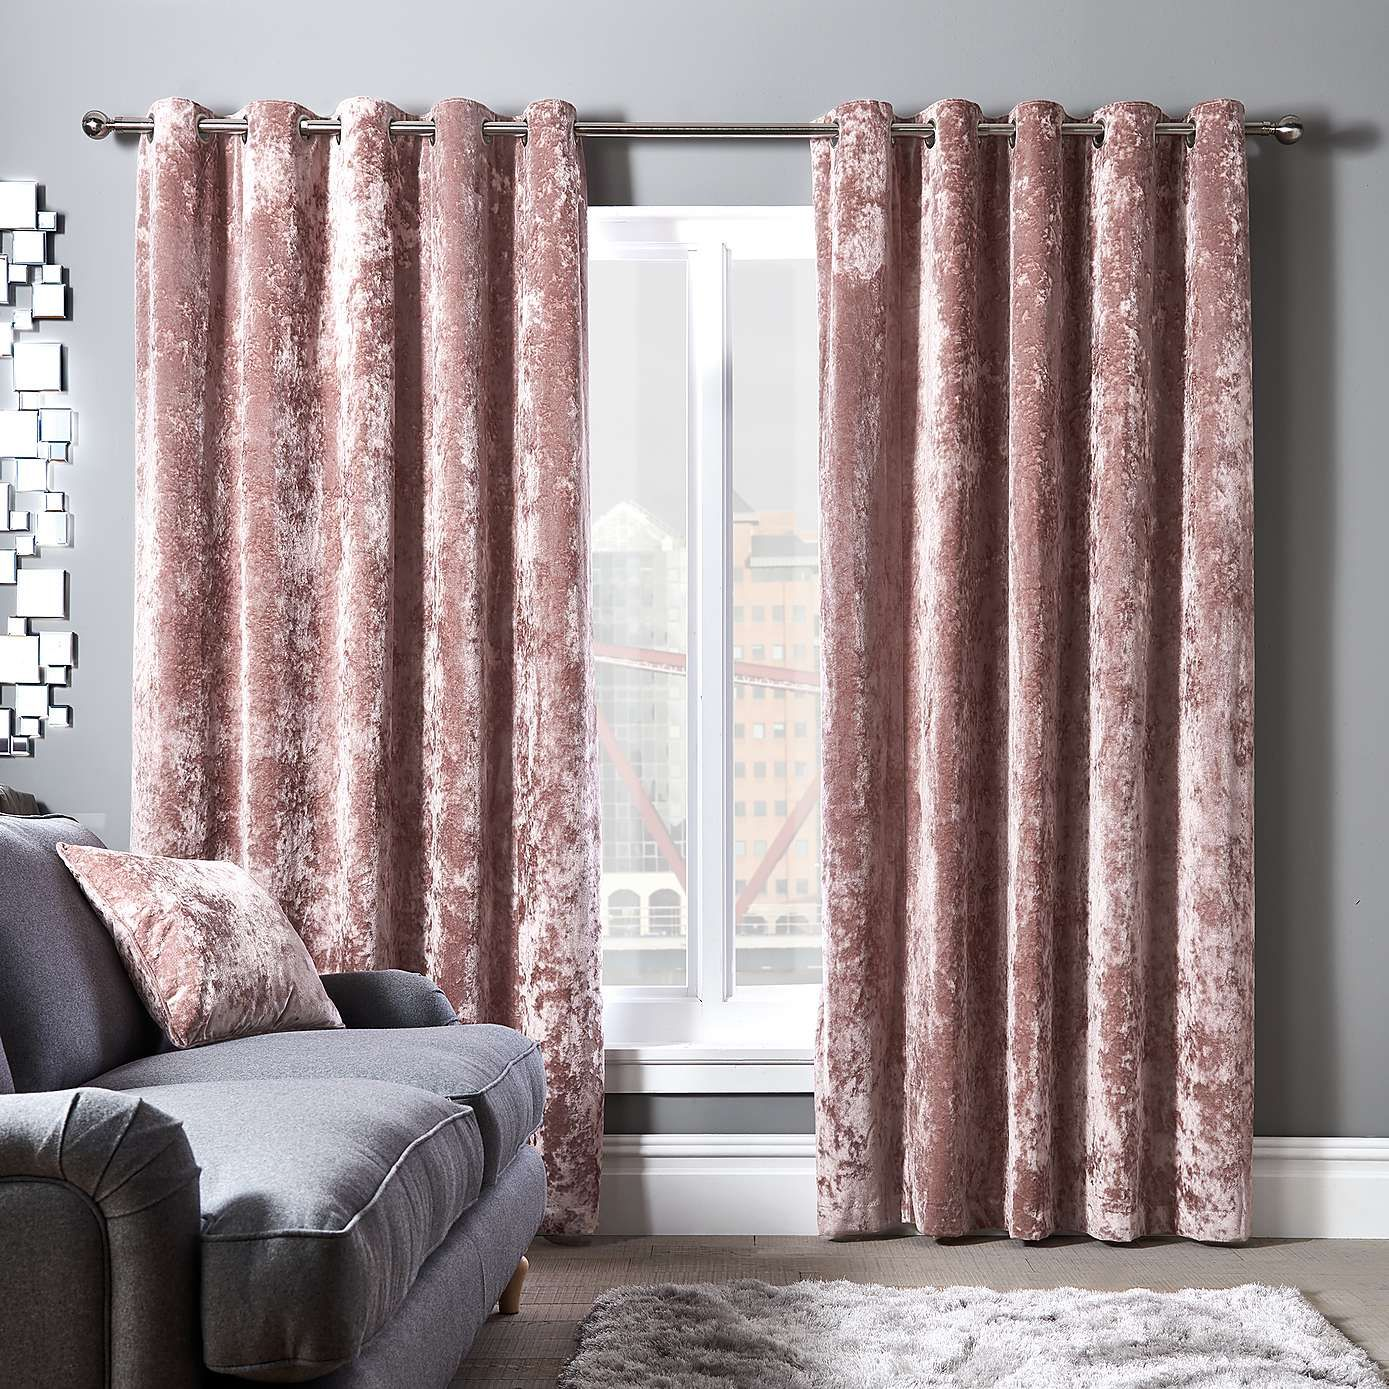 Crushed Velour Blush Eyelet Curtains Gold Curtains Living Room